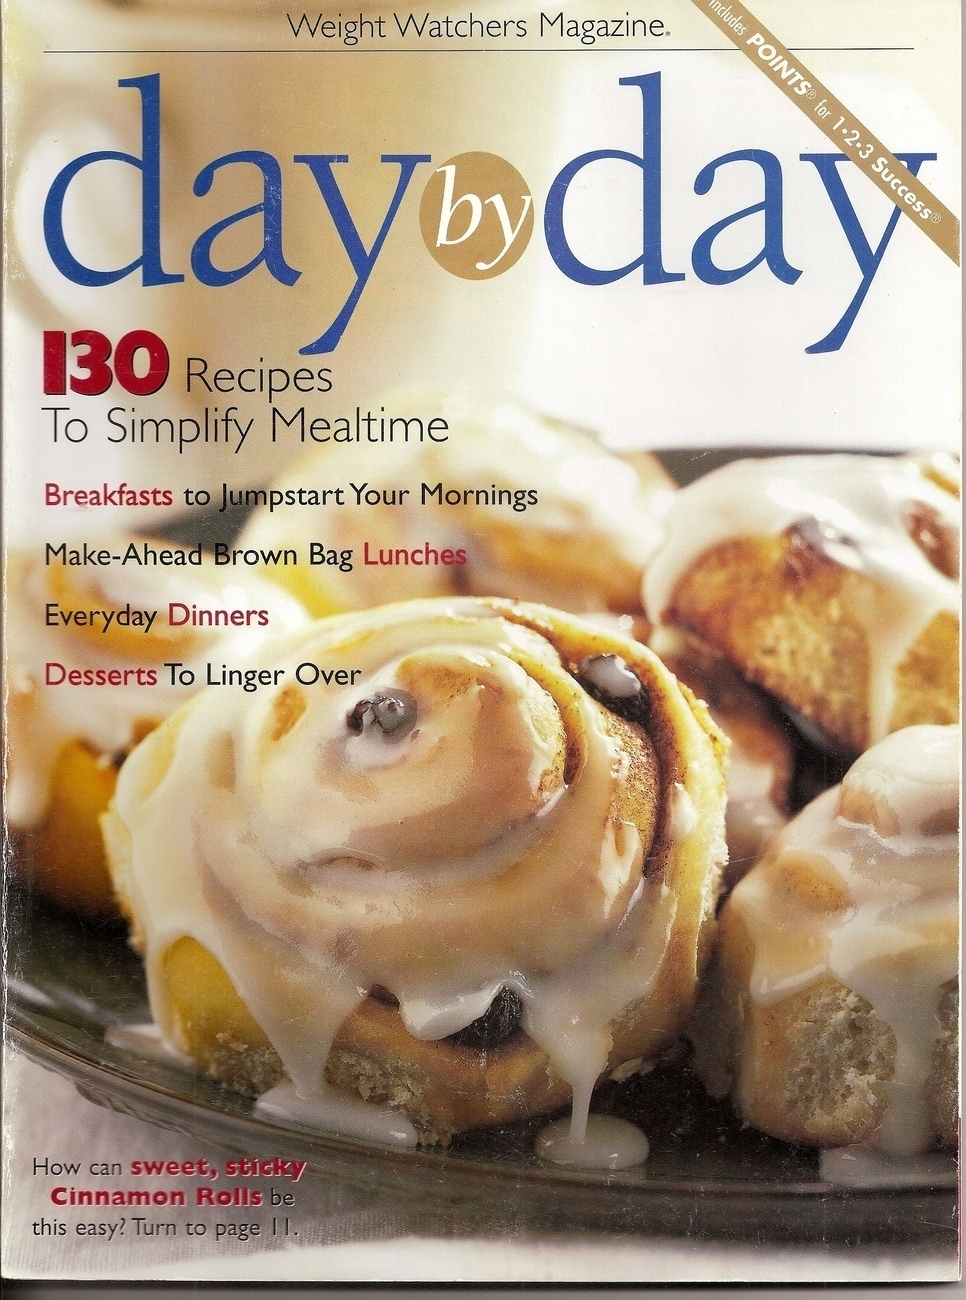 day by day weight watchers magazine cookbook cookbooks. Black Bedroom Furniture Sets. Home Design Ideas